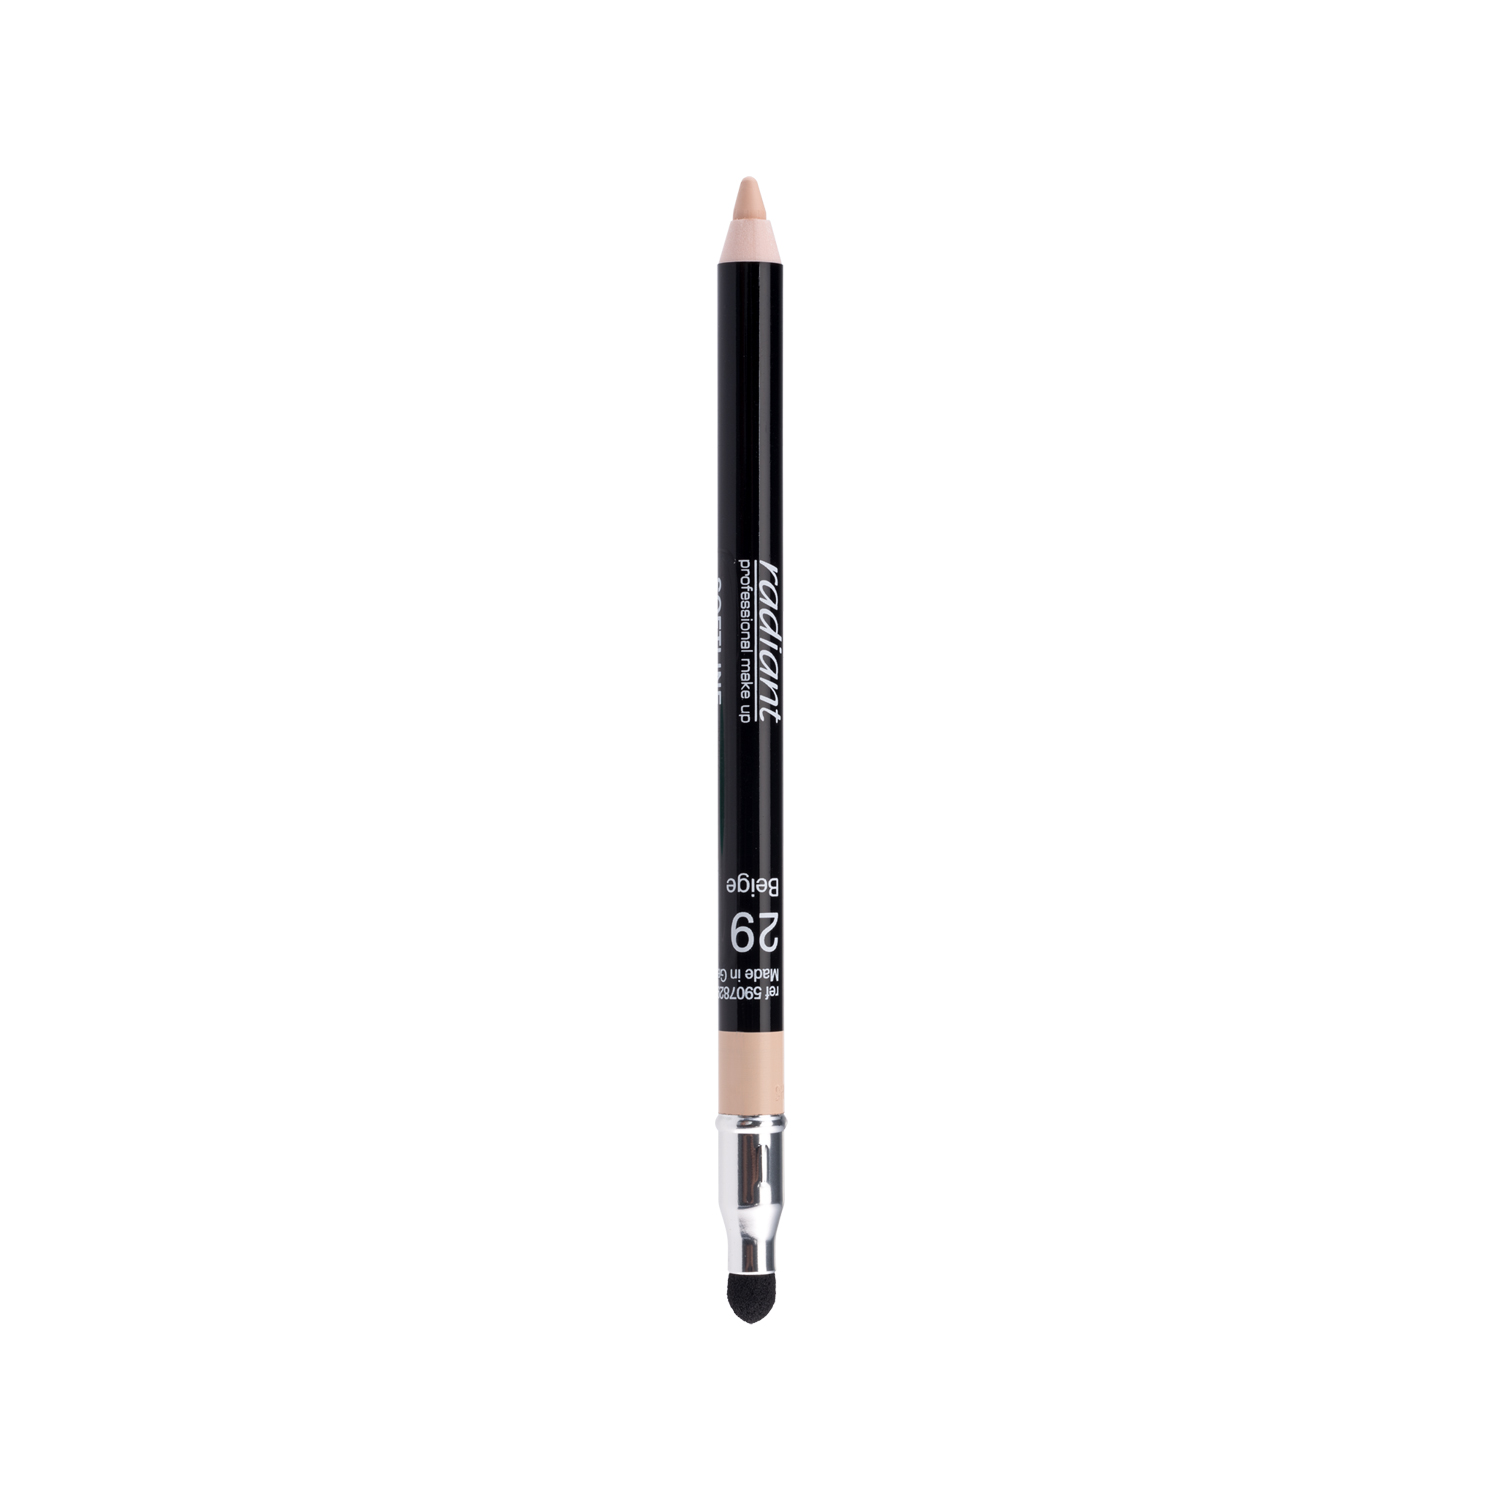 SOFTLINE WATERPROOF EYE PENCIL (29 Beige)